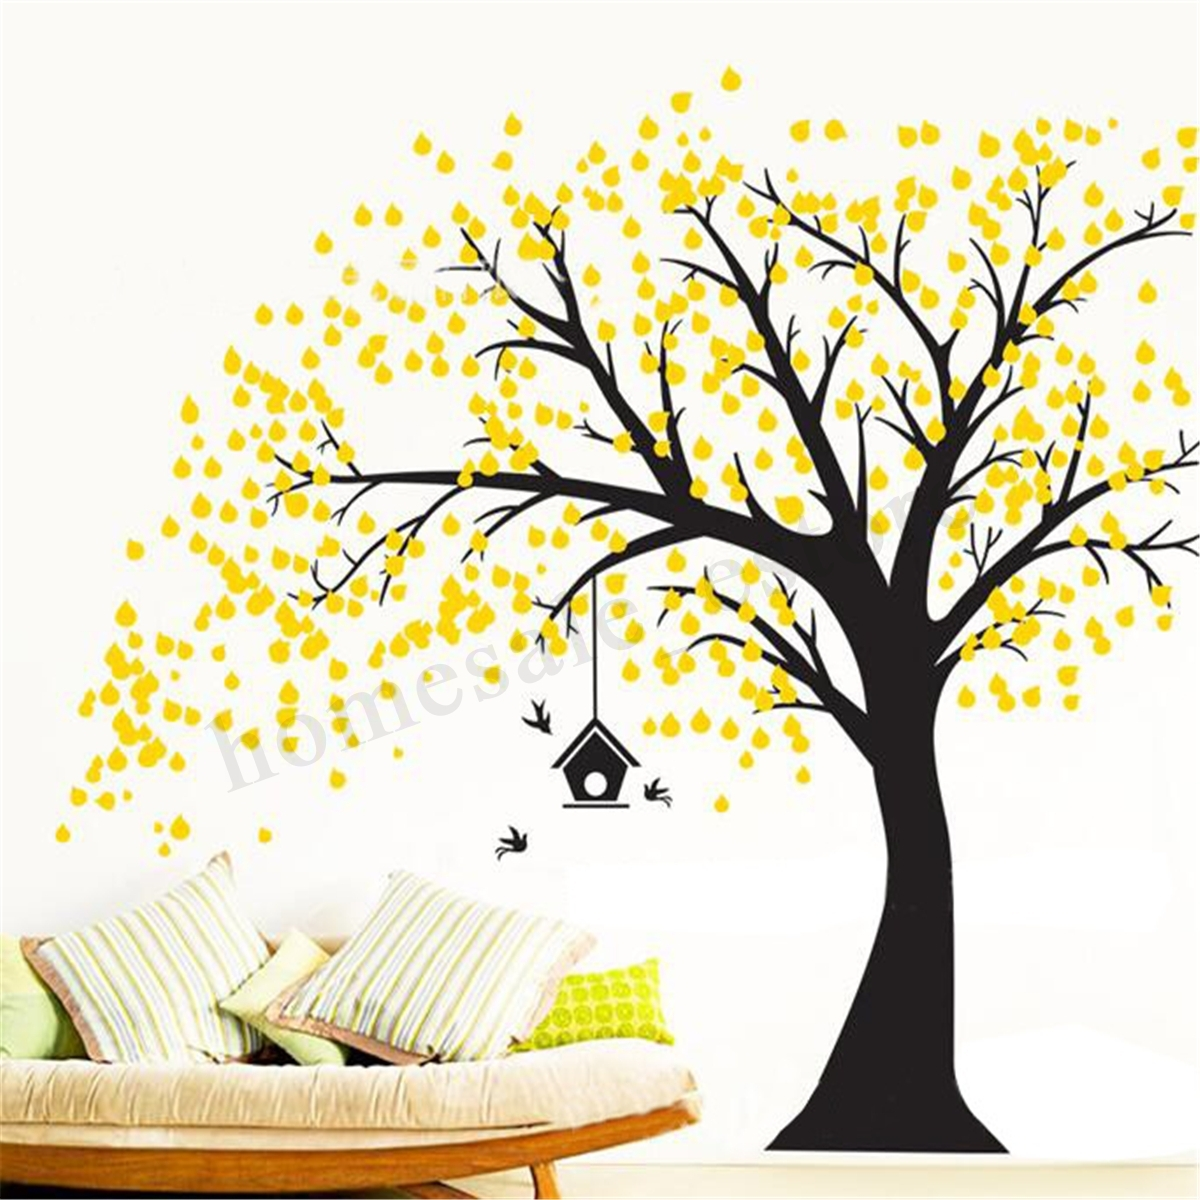 210cmx180cm Diy Tree Wall Paper Art Wall Sticker Home Bedroom Bbay Throughout Best And Newest Wall Tree Art (View 11 of 20)